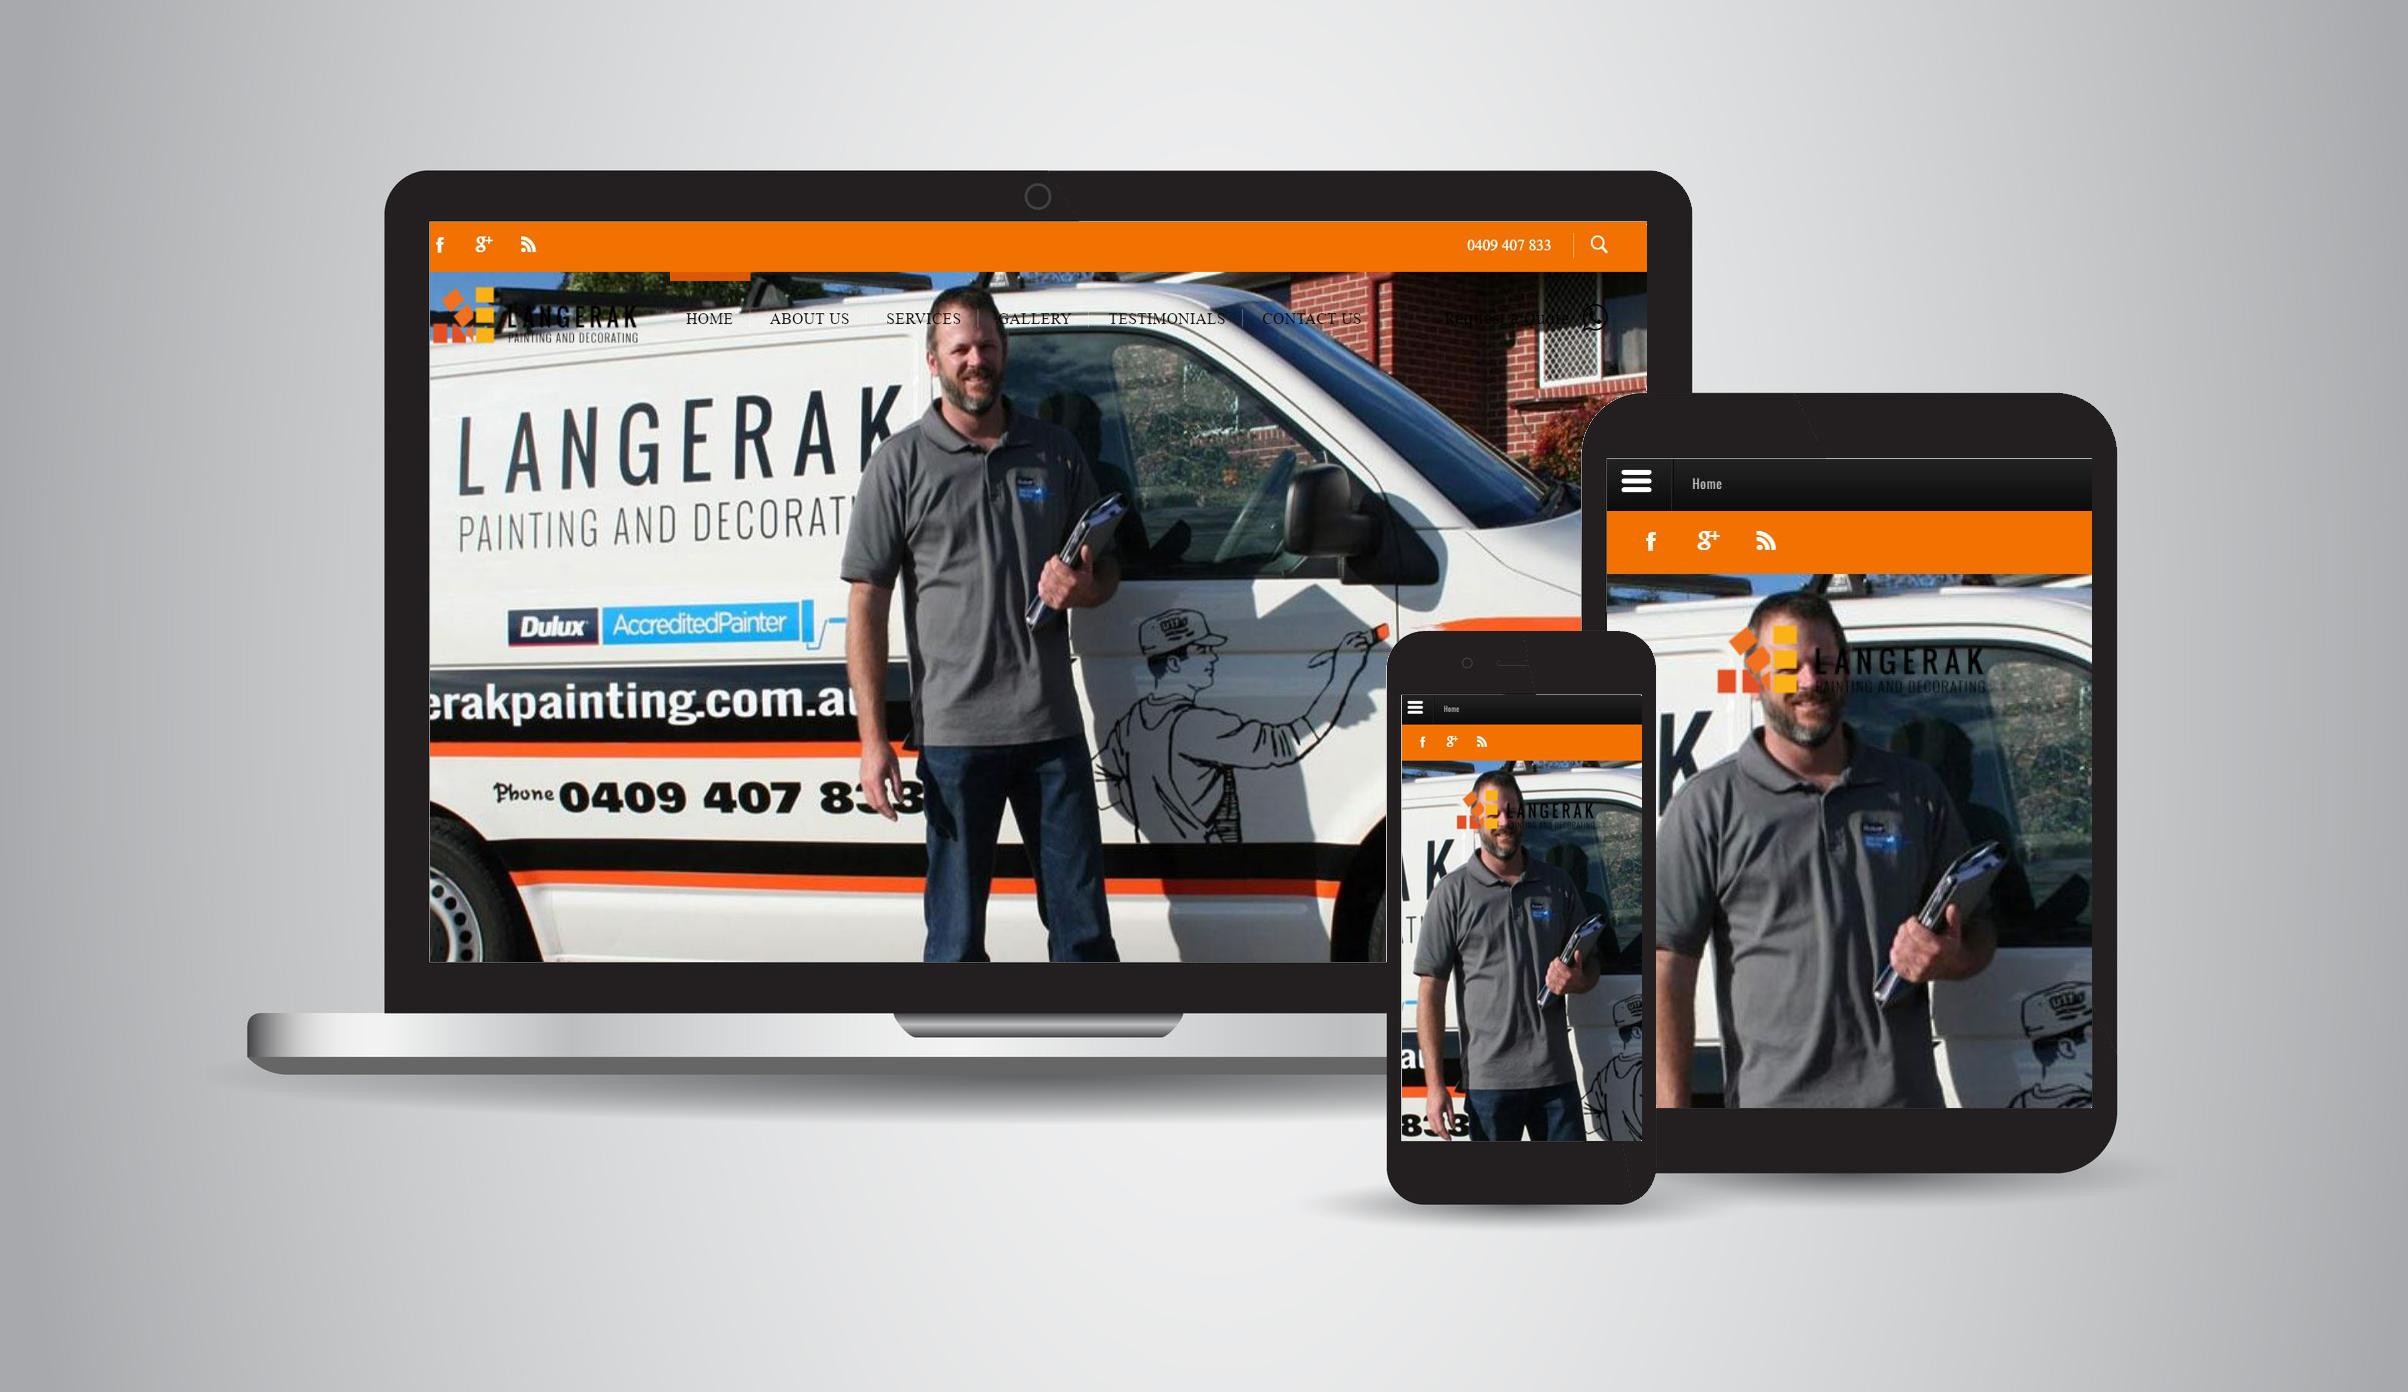 Langerak Painting and Decorating - Painters & Decorators